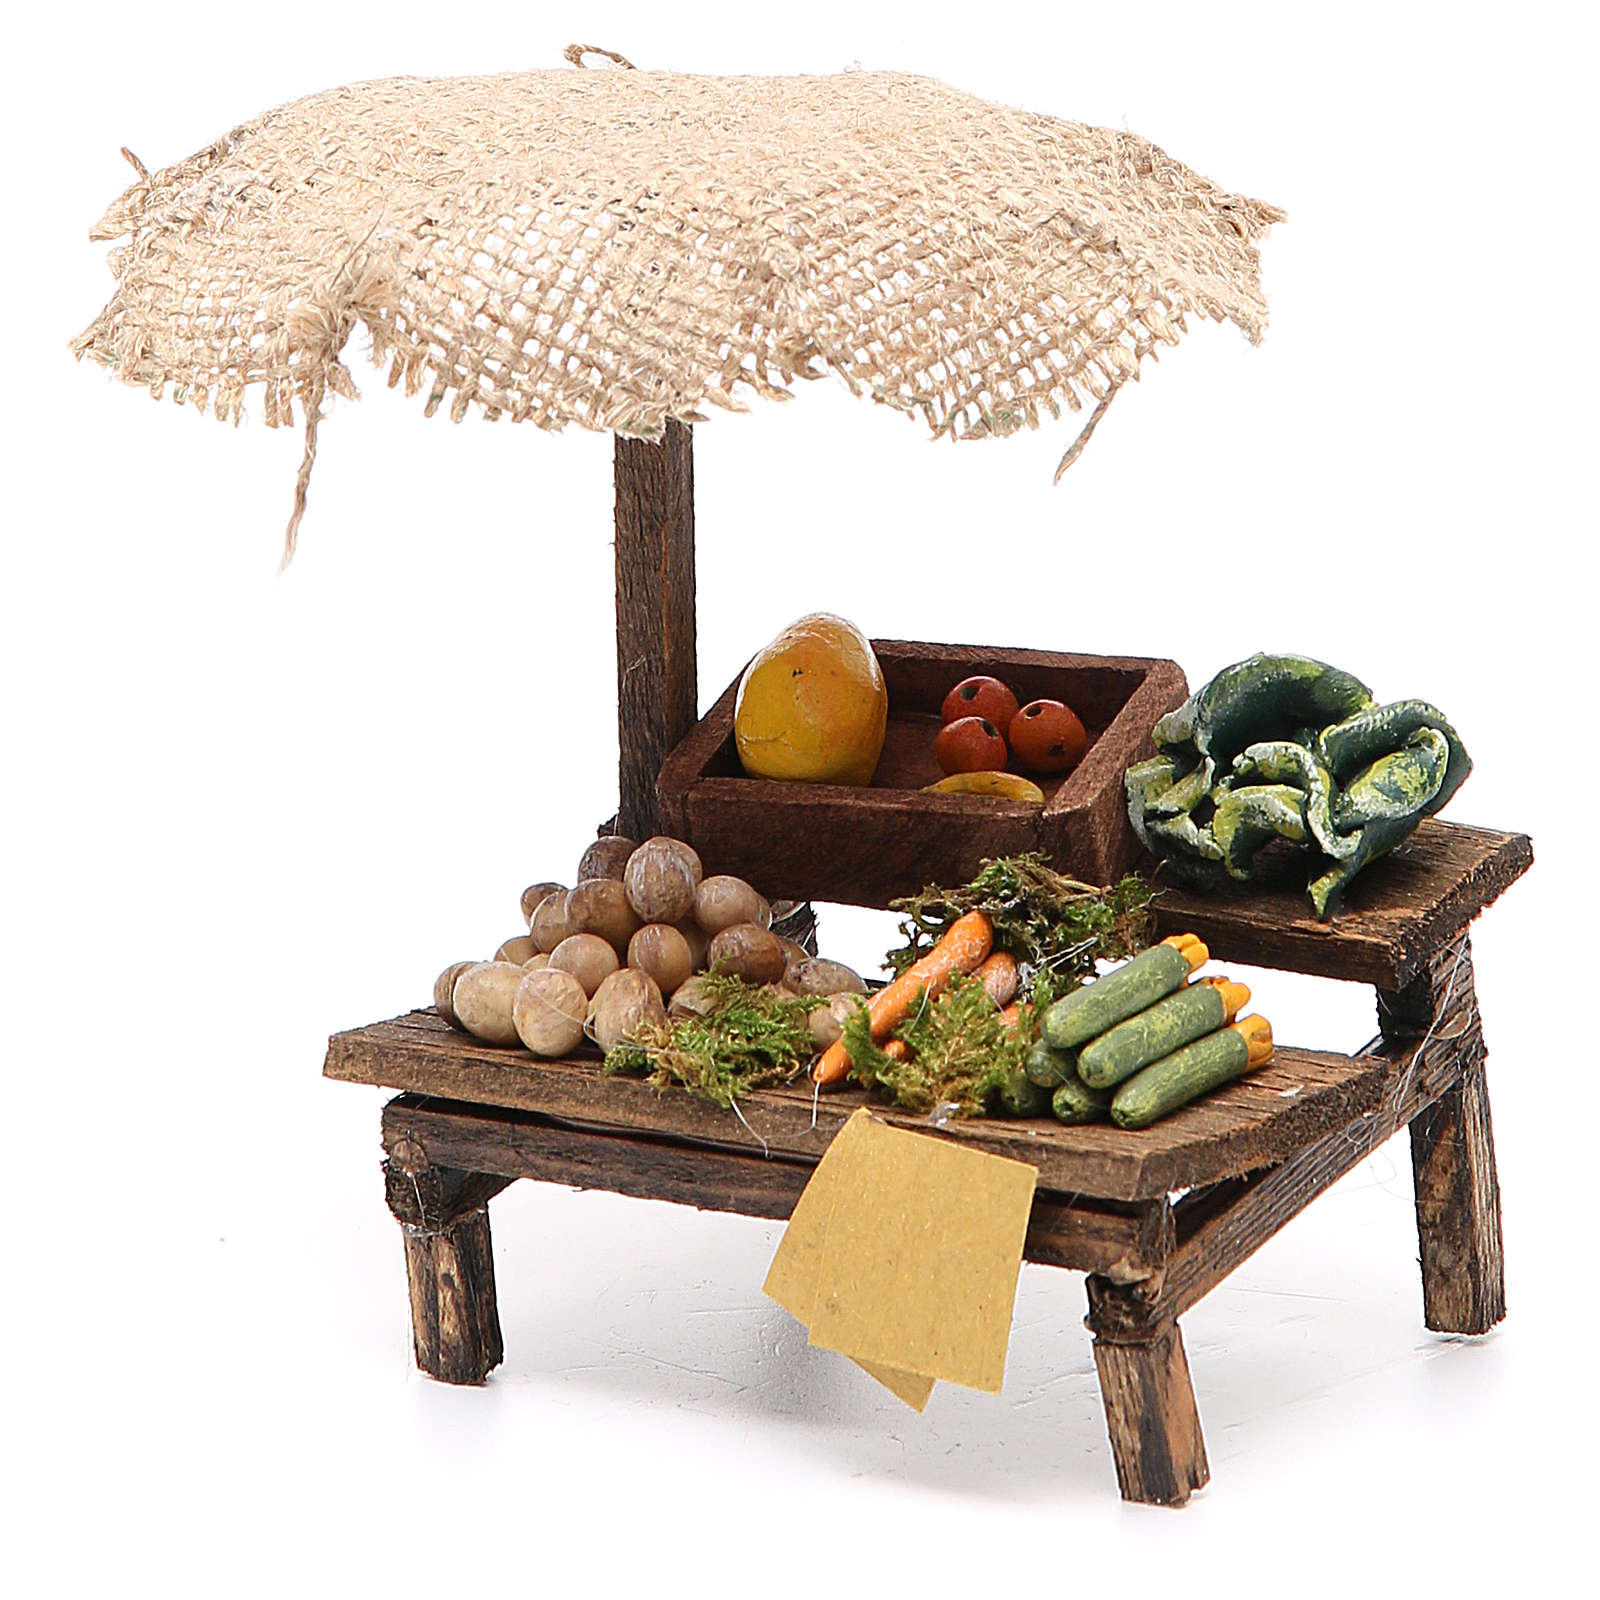 Workshop nativity with beach umbrella, vegetables 12x10x12cm 4